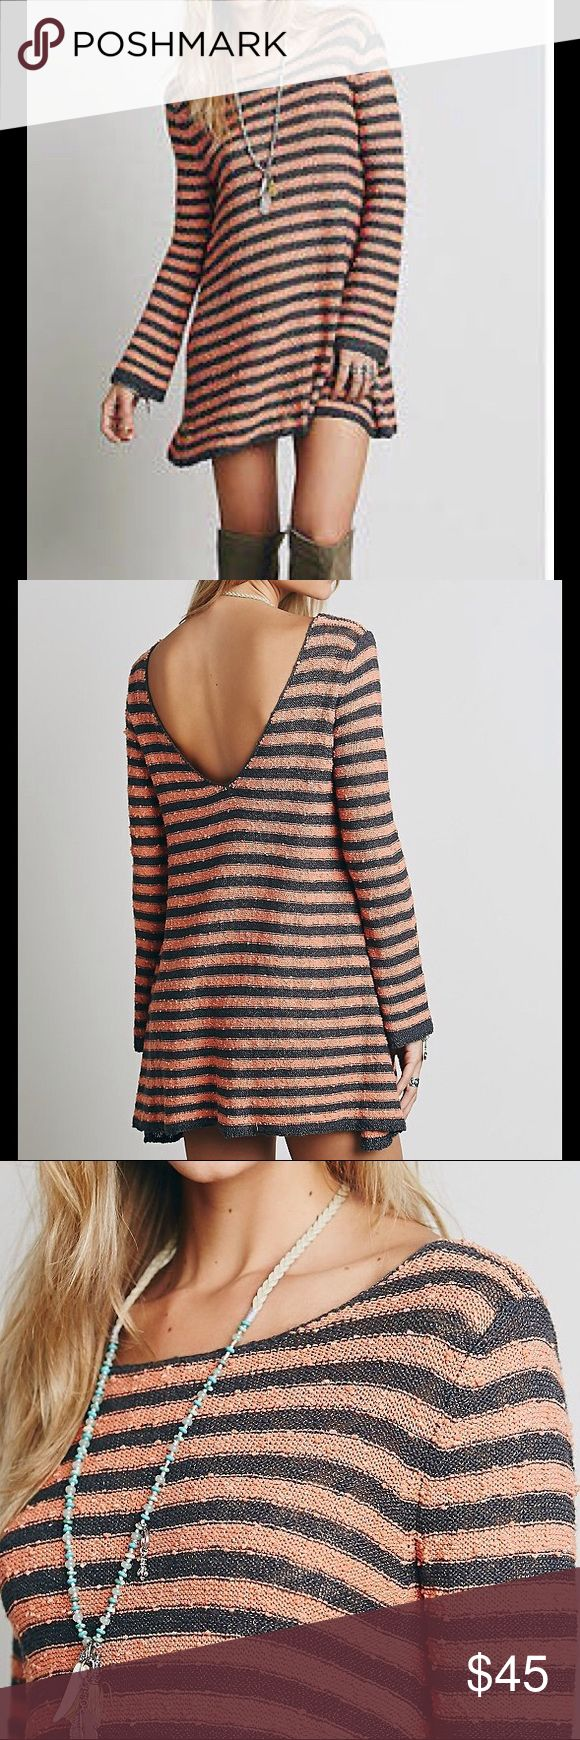 """FREE PEOPLE COUNTING STRIPES SWING TUNIC FREE PEOPLE COUNTING STRIPES SWIMG TUNIC IN GRAPHITE. LOW BACK, SLIGHTLY NUBBY TEXTURE. Approx 19""""PTP, 34""""L. Free People Dresses"""